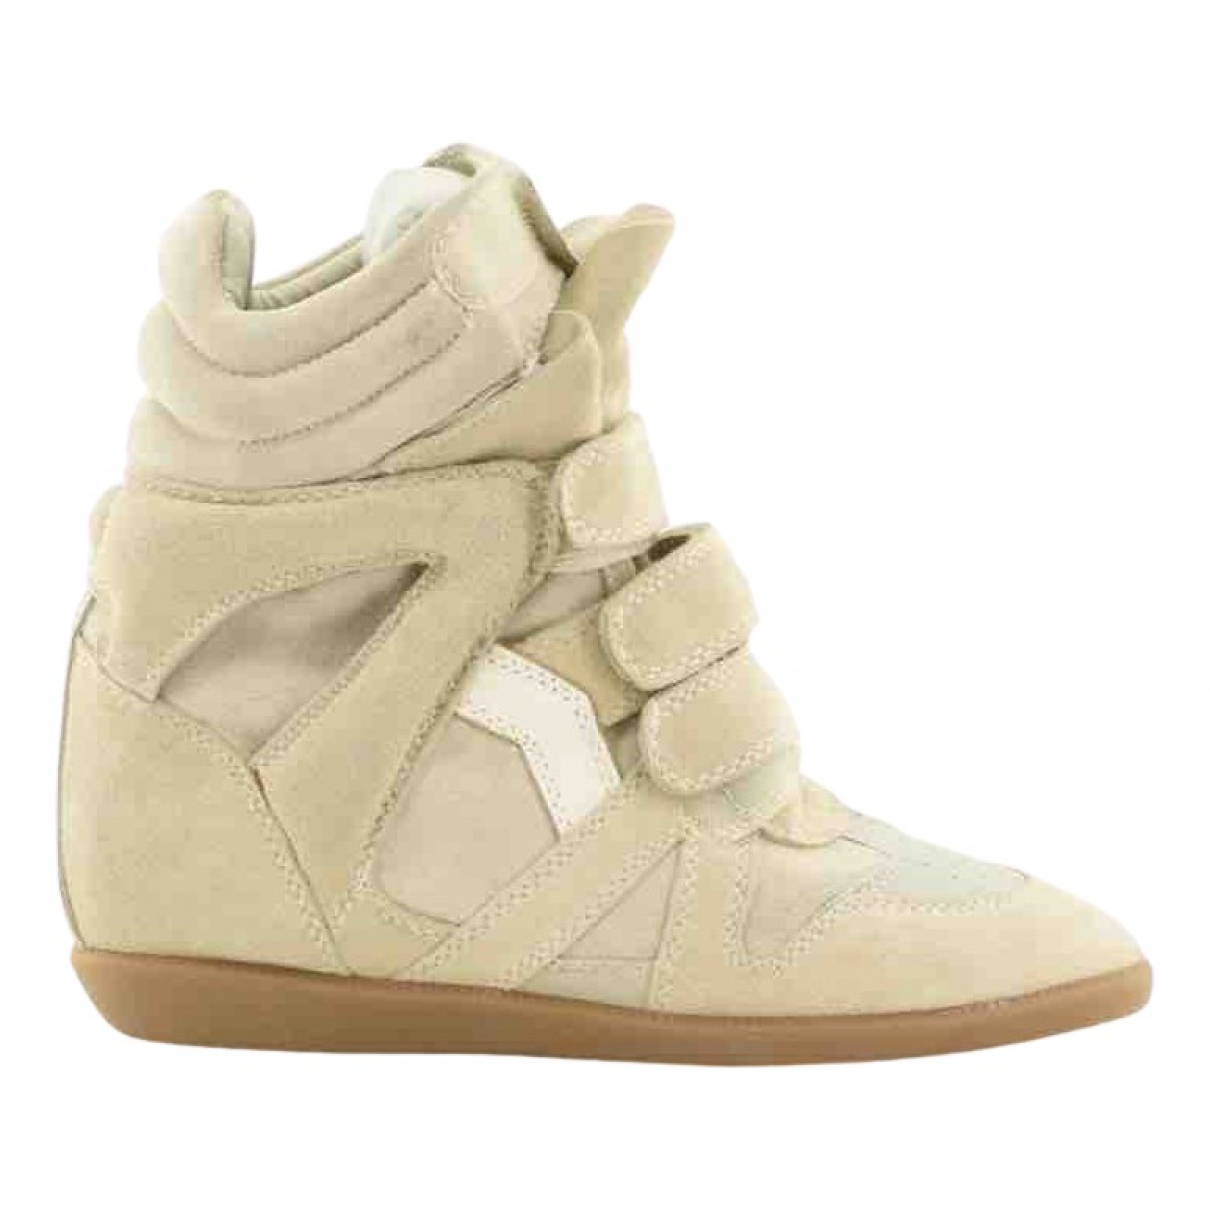 Isabel Marant Bayley Beige Suede Trainers for Women 39 EU